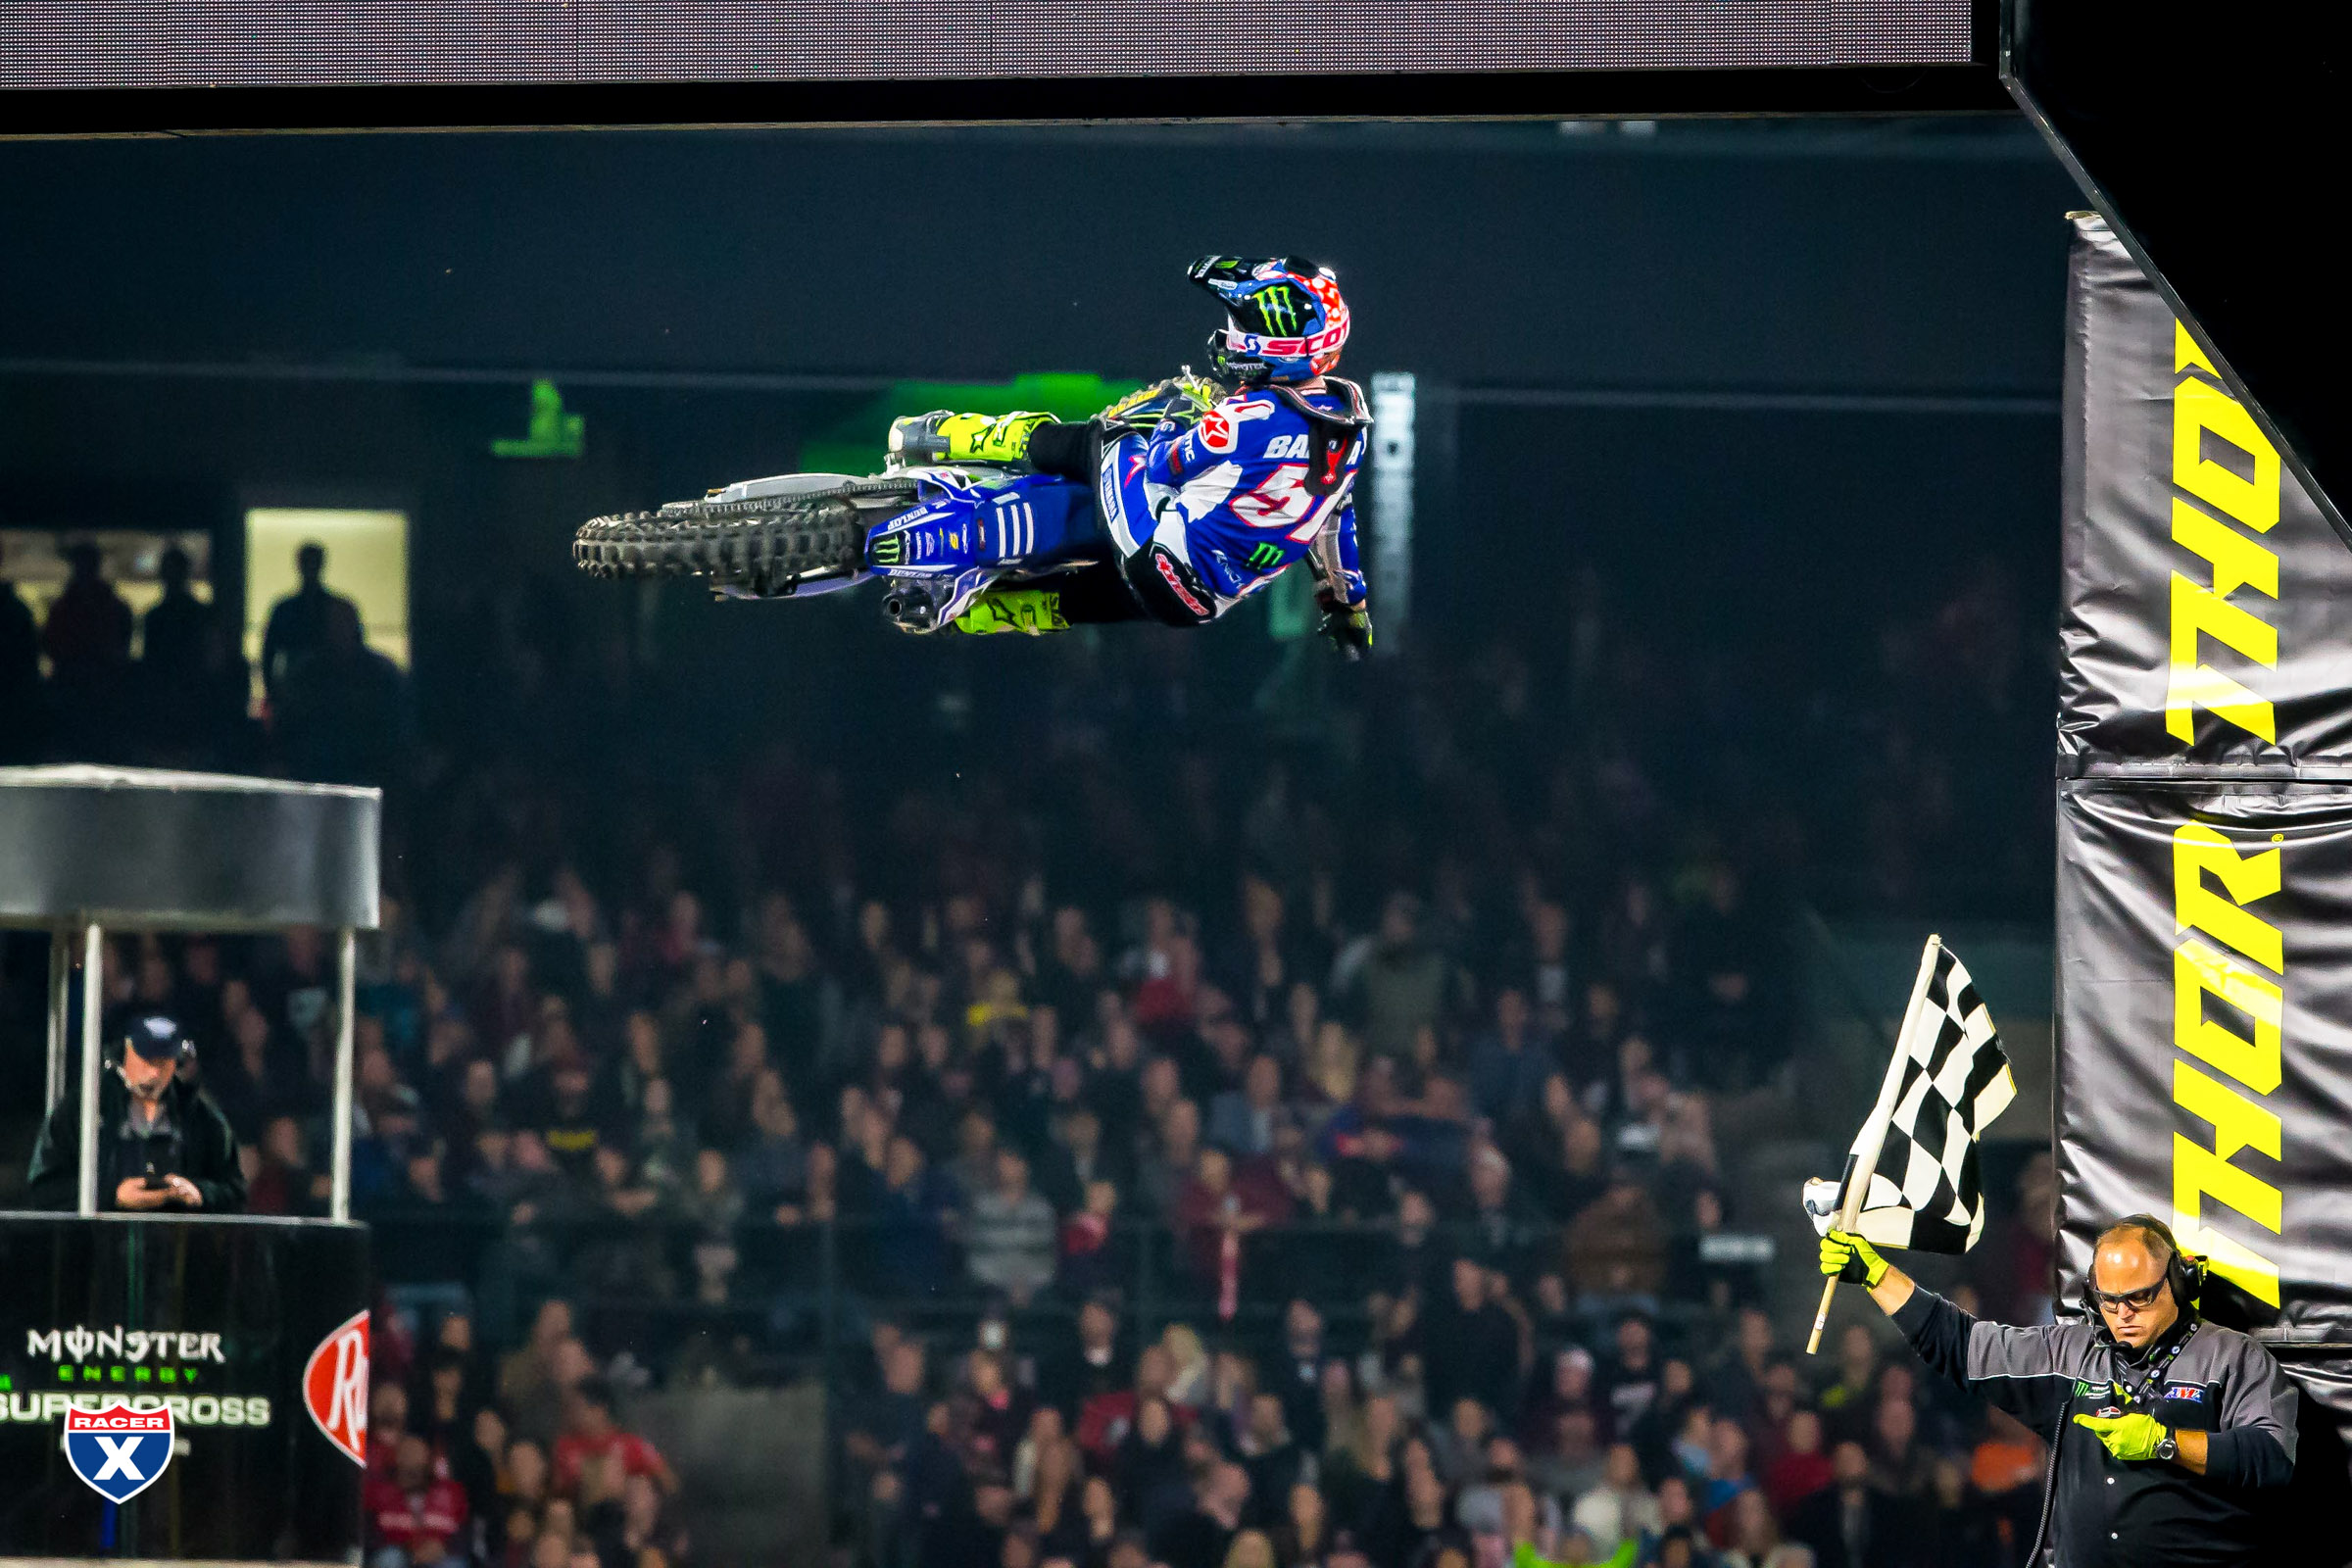 Barcia_SX18_A1_RS_0989